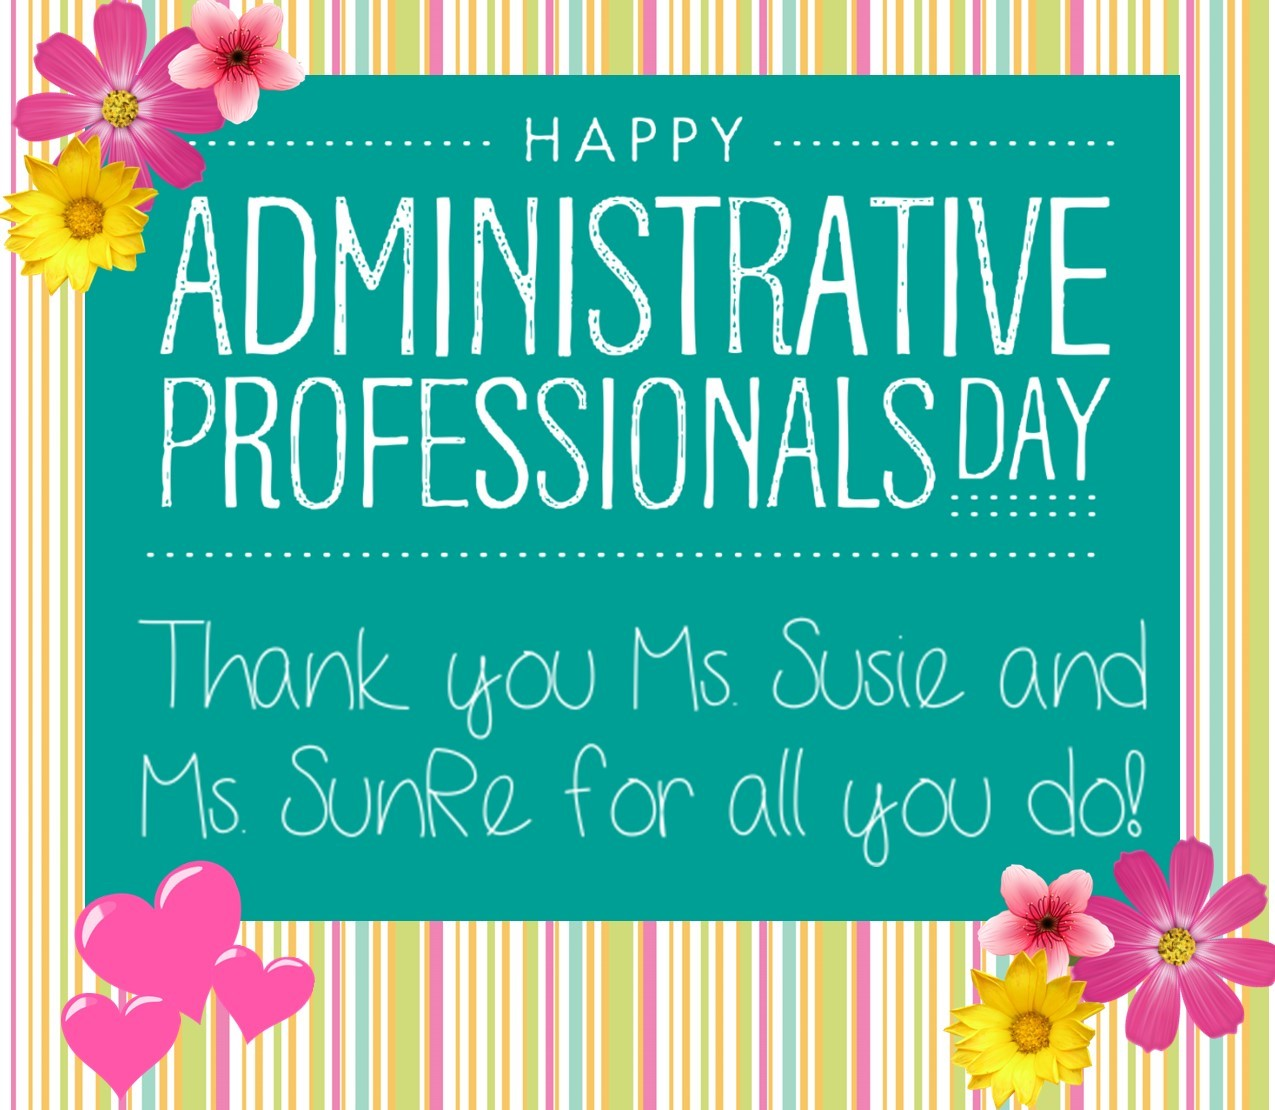 admin professional's day